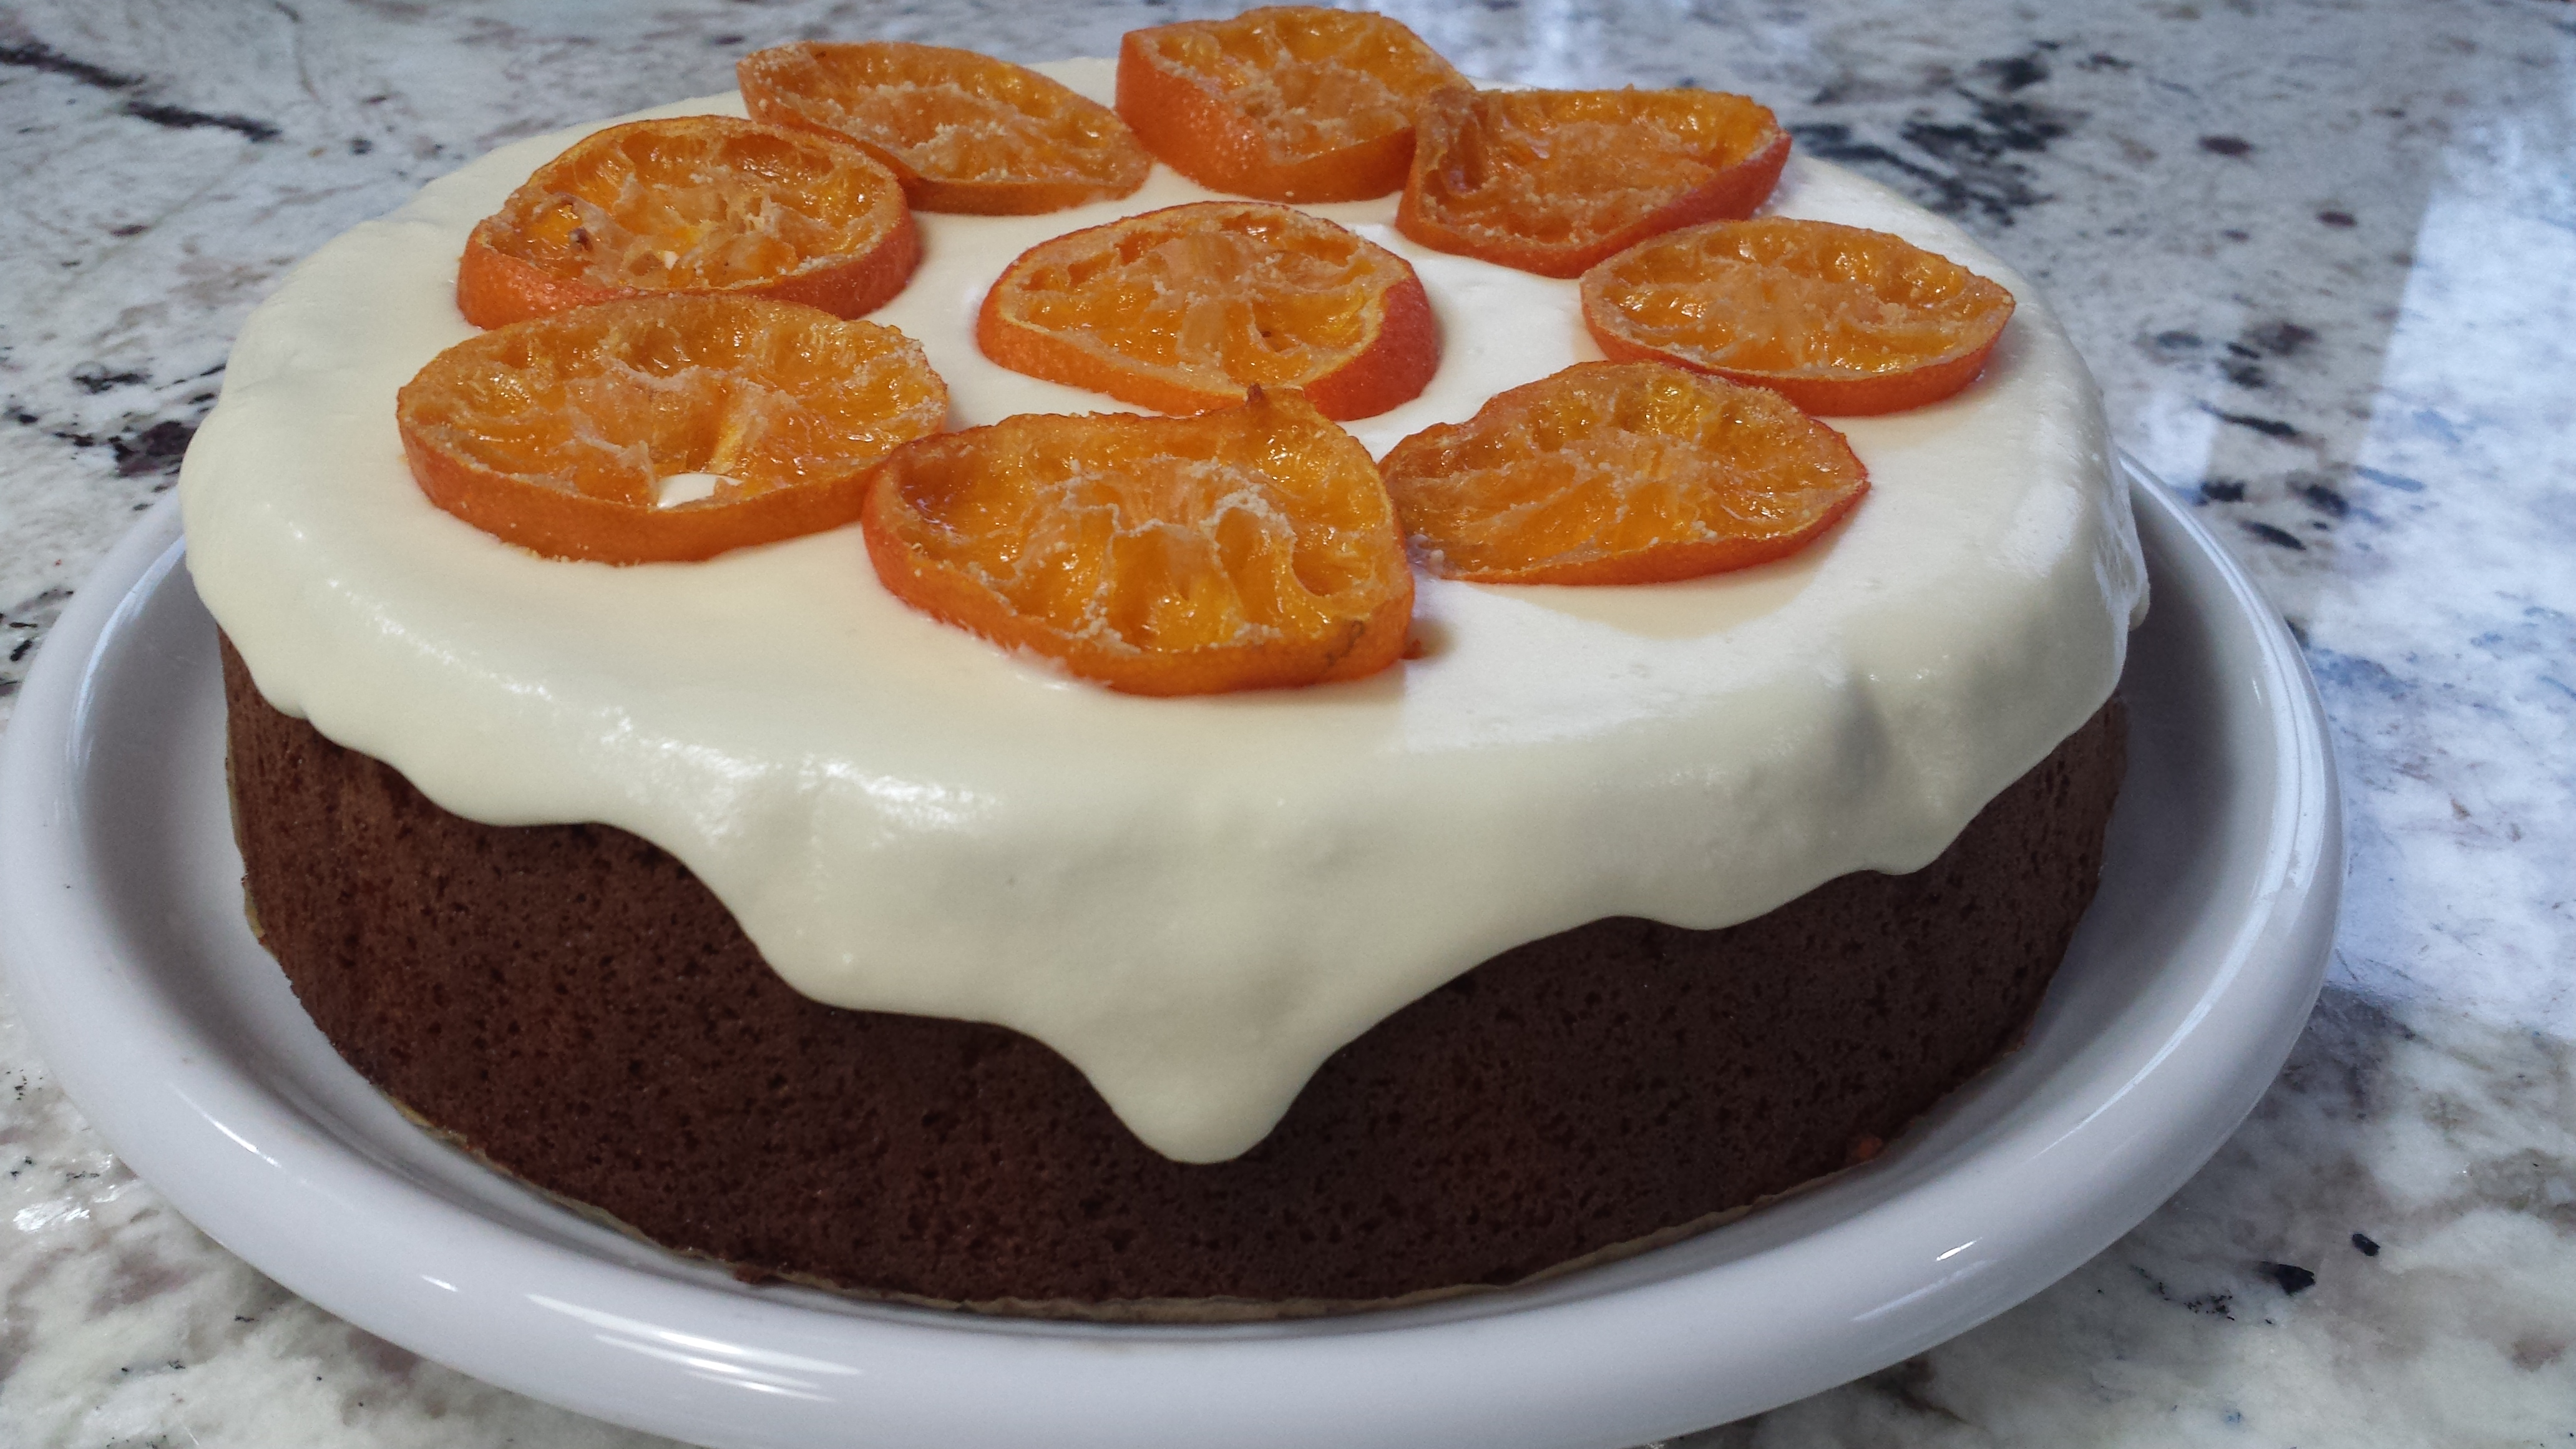 Can't Wait to Make it Again Clementine Cake | A Bit of Salt